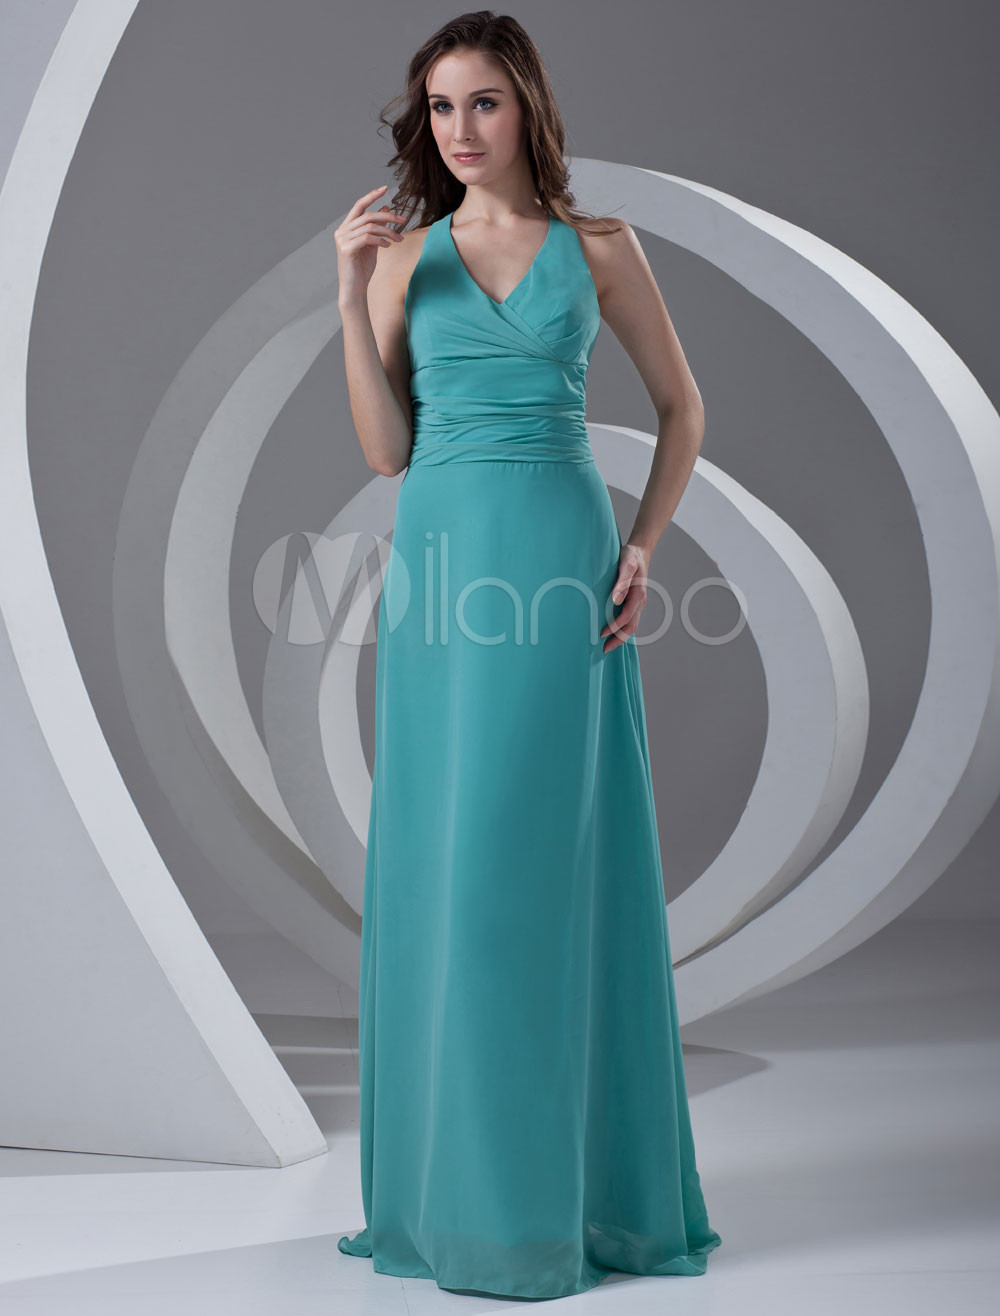 Chiffon Bridesmaid Dress Halter Turquoise V Neck Long Prom Dress Backless Ribbon Bow  Floor Length Wedding  Party Dress